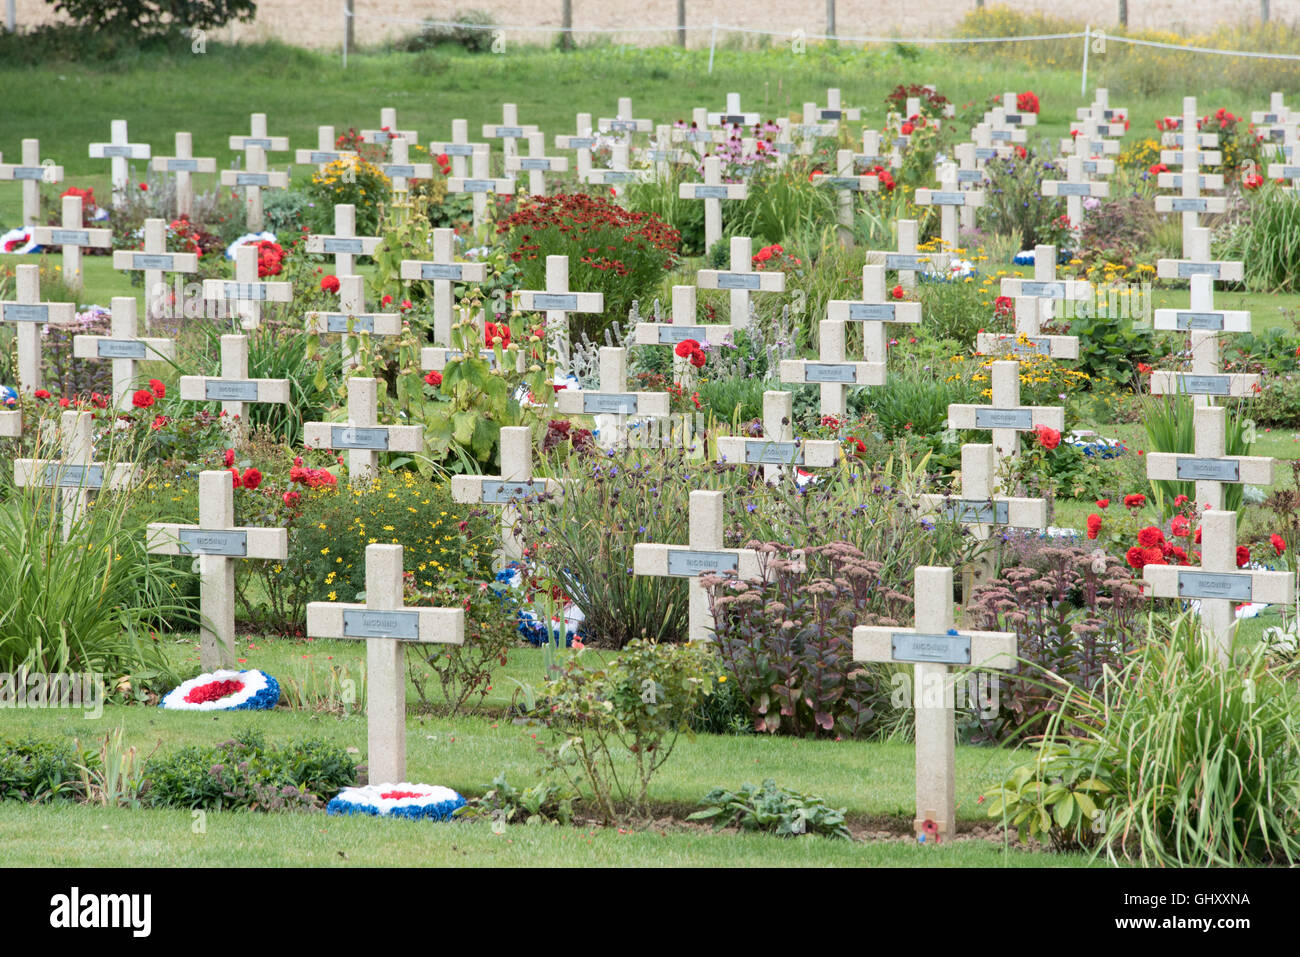 Crosses marking the graves of unknown soldiers at the Thiepval memorial - Stock Image